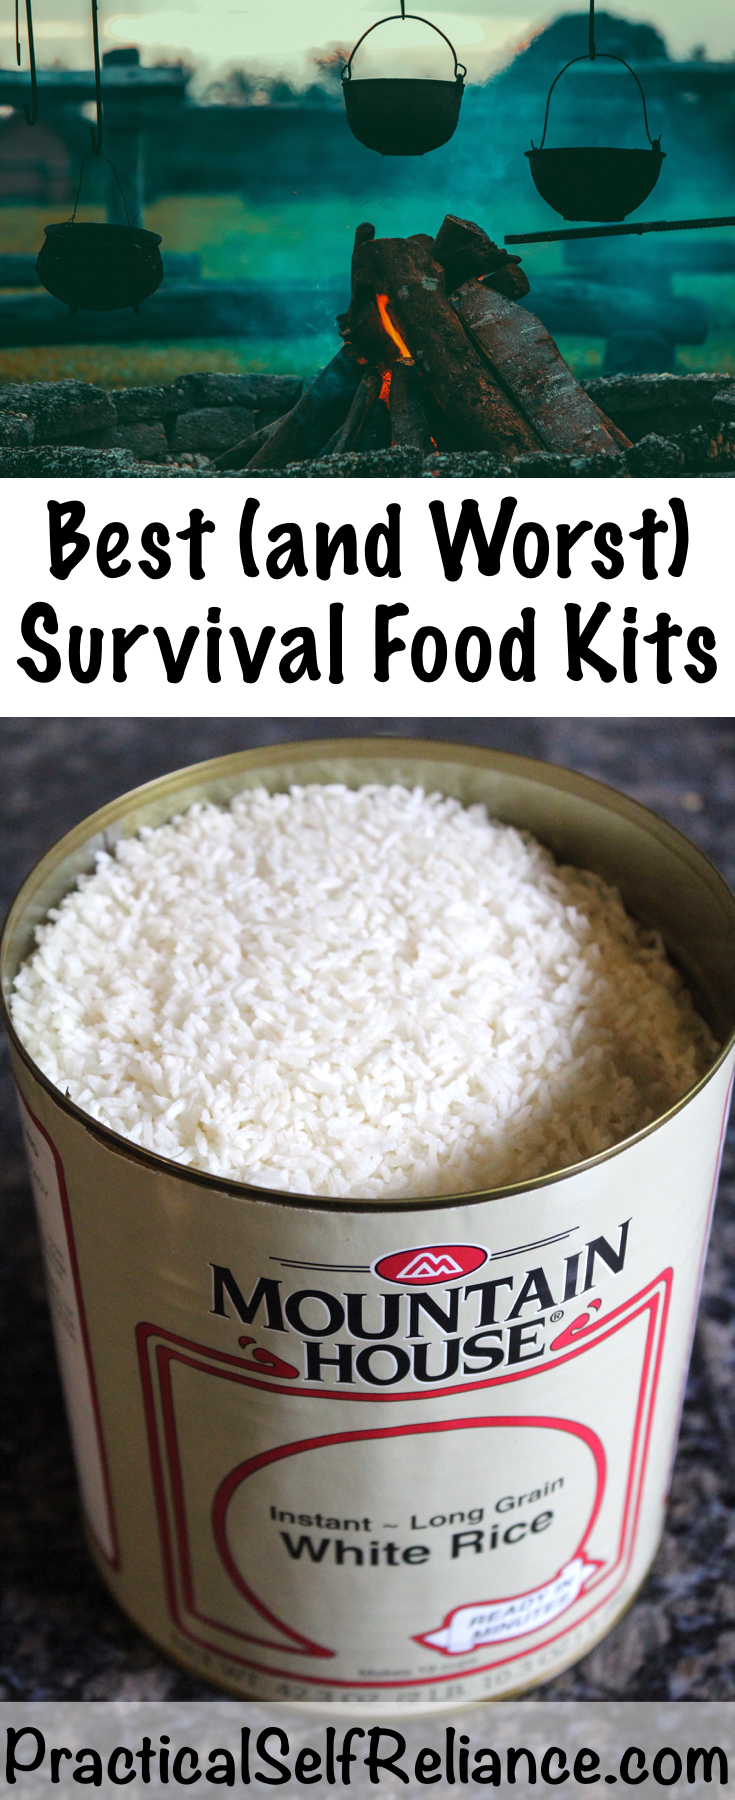 Best (and Worst) Survival Food Kits